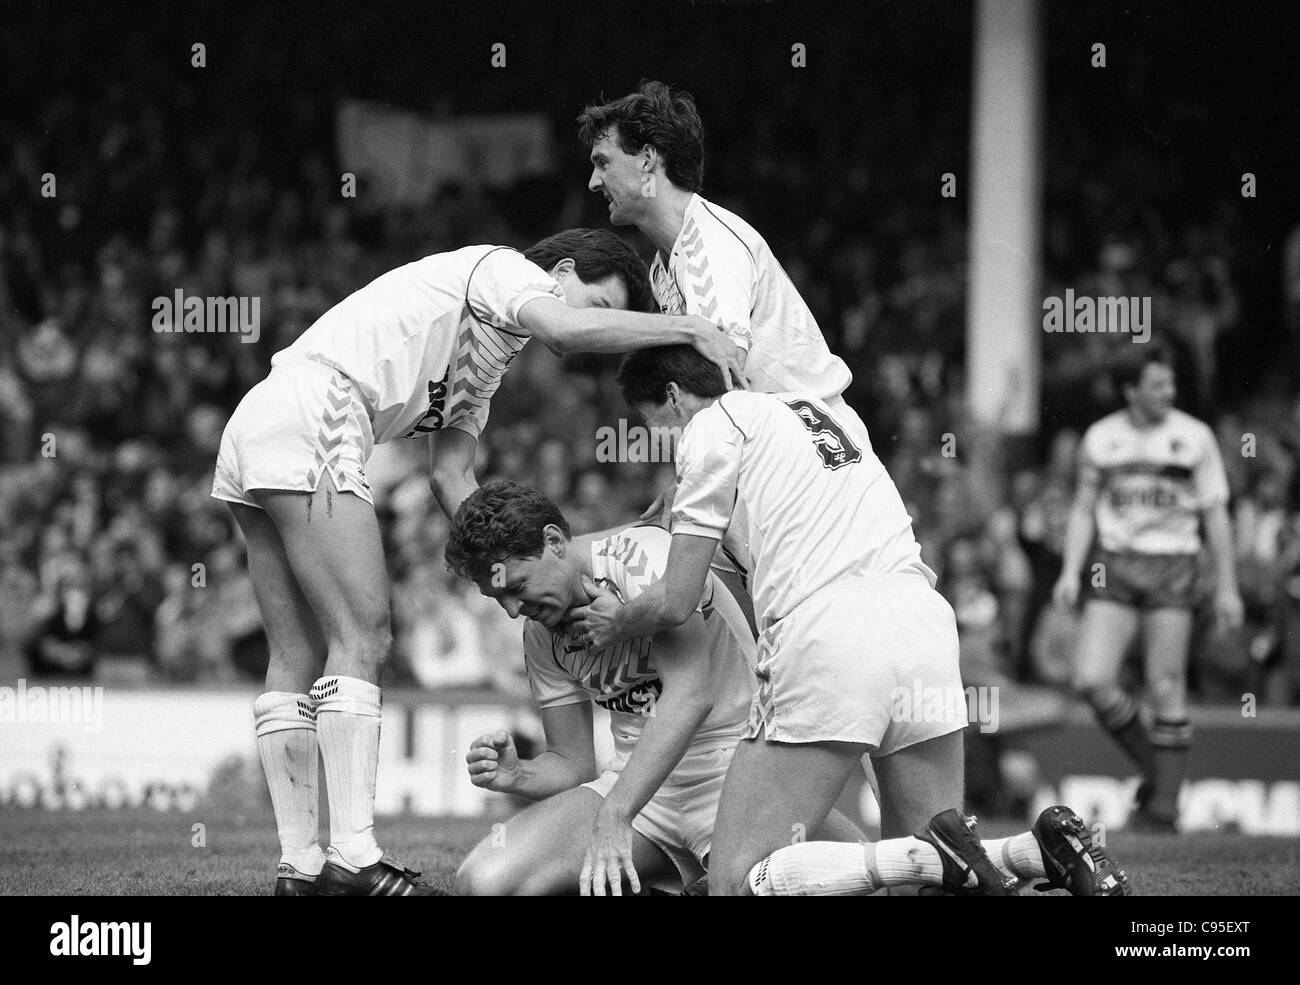 Tottenham Hotspur v Watford 11/4/87 Clive Allen celebrates his goal with Steve Hodge, Chris Waddle and Paul Allen. - Stock Image